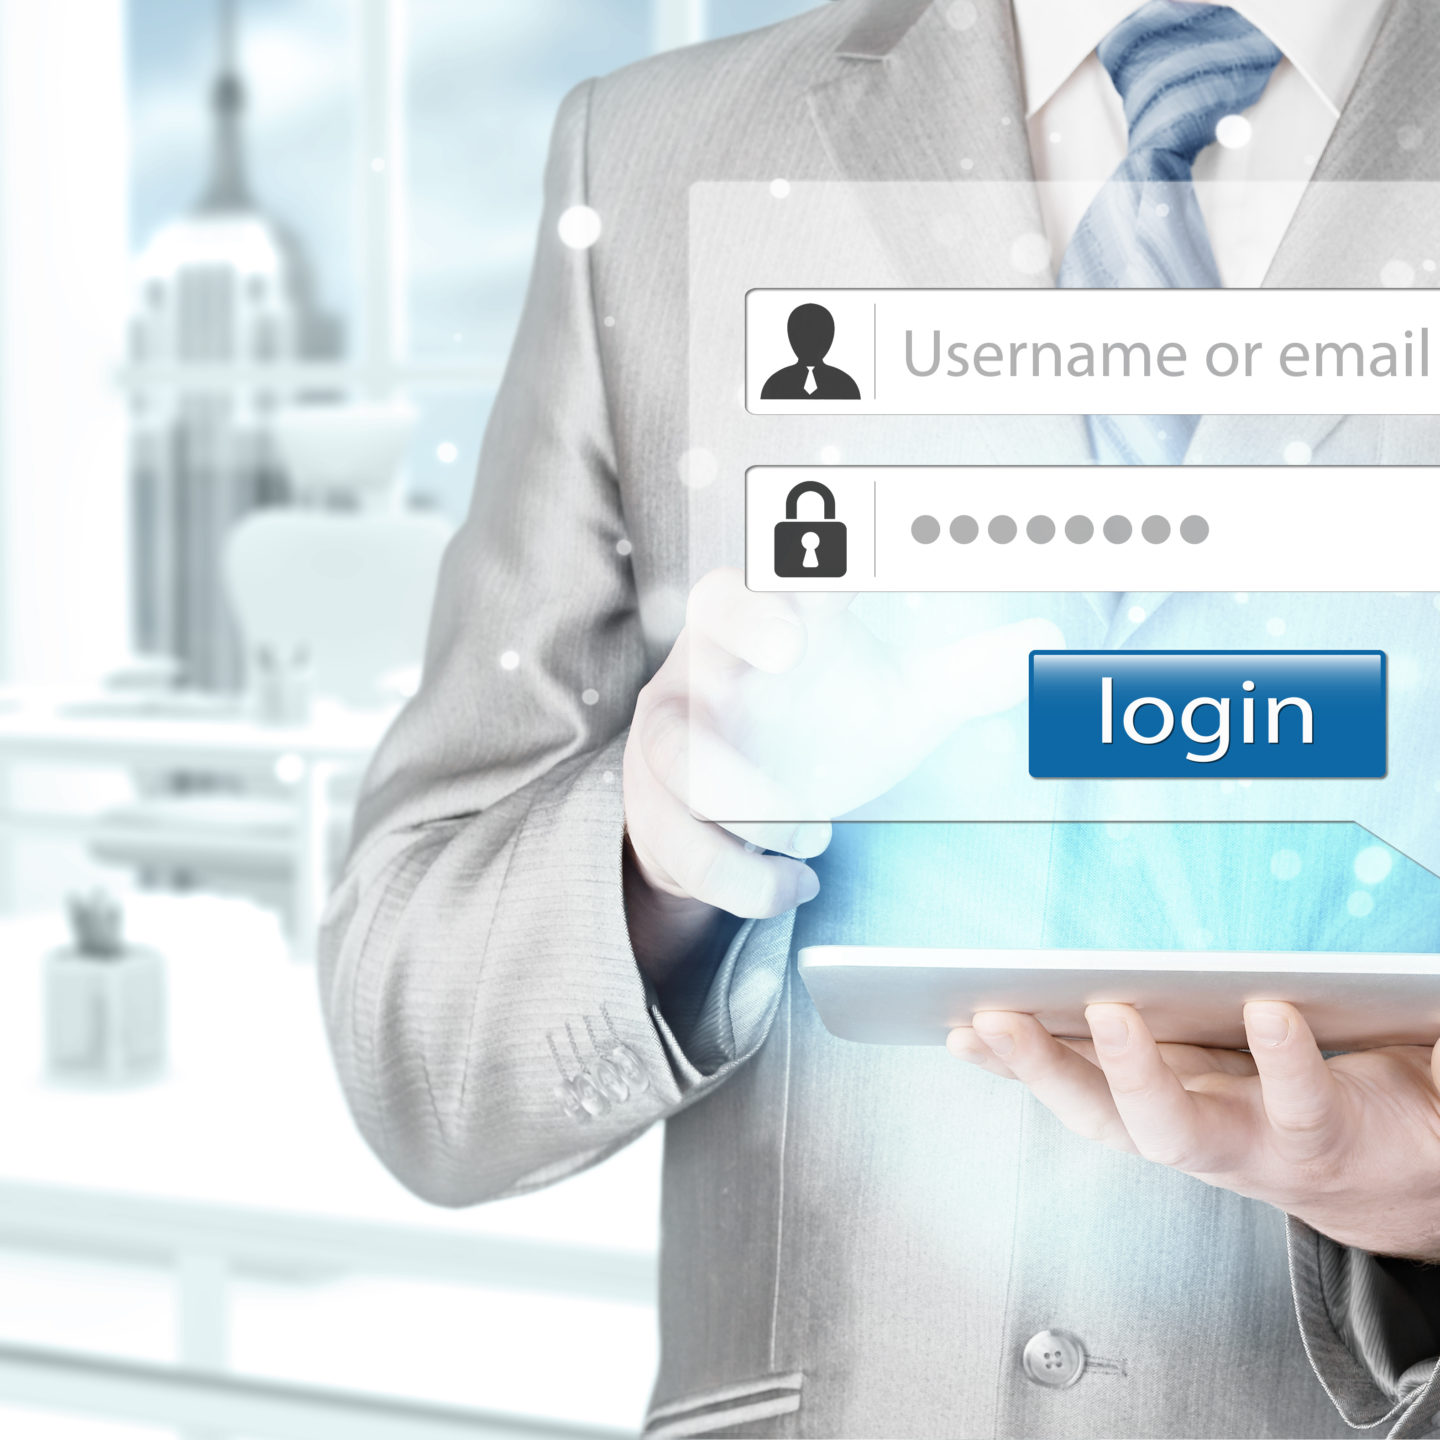 EMAIL HACKING AND PREVENTIONS